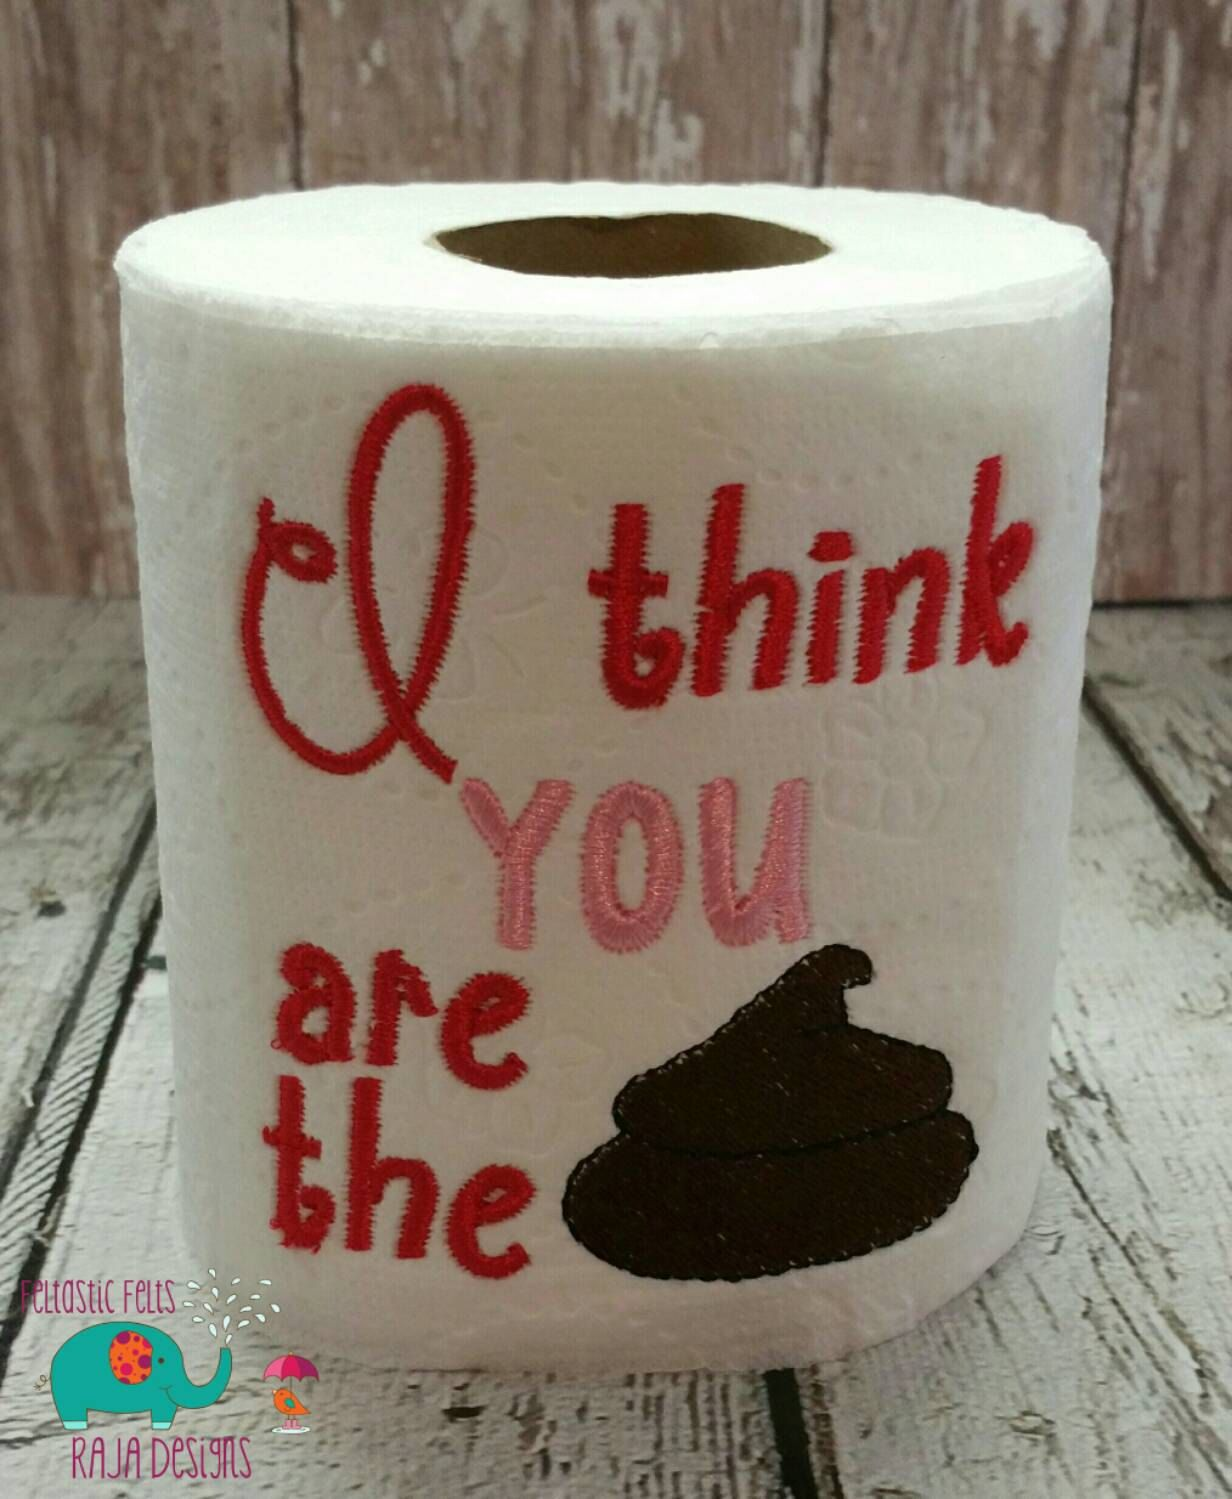 Funny Toilet Paper I Think You Are The Poop Embroidered Toilet Paper Gag